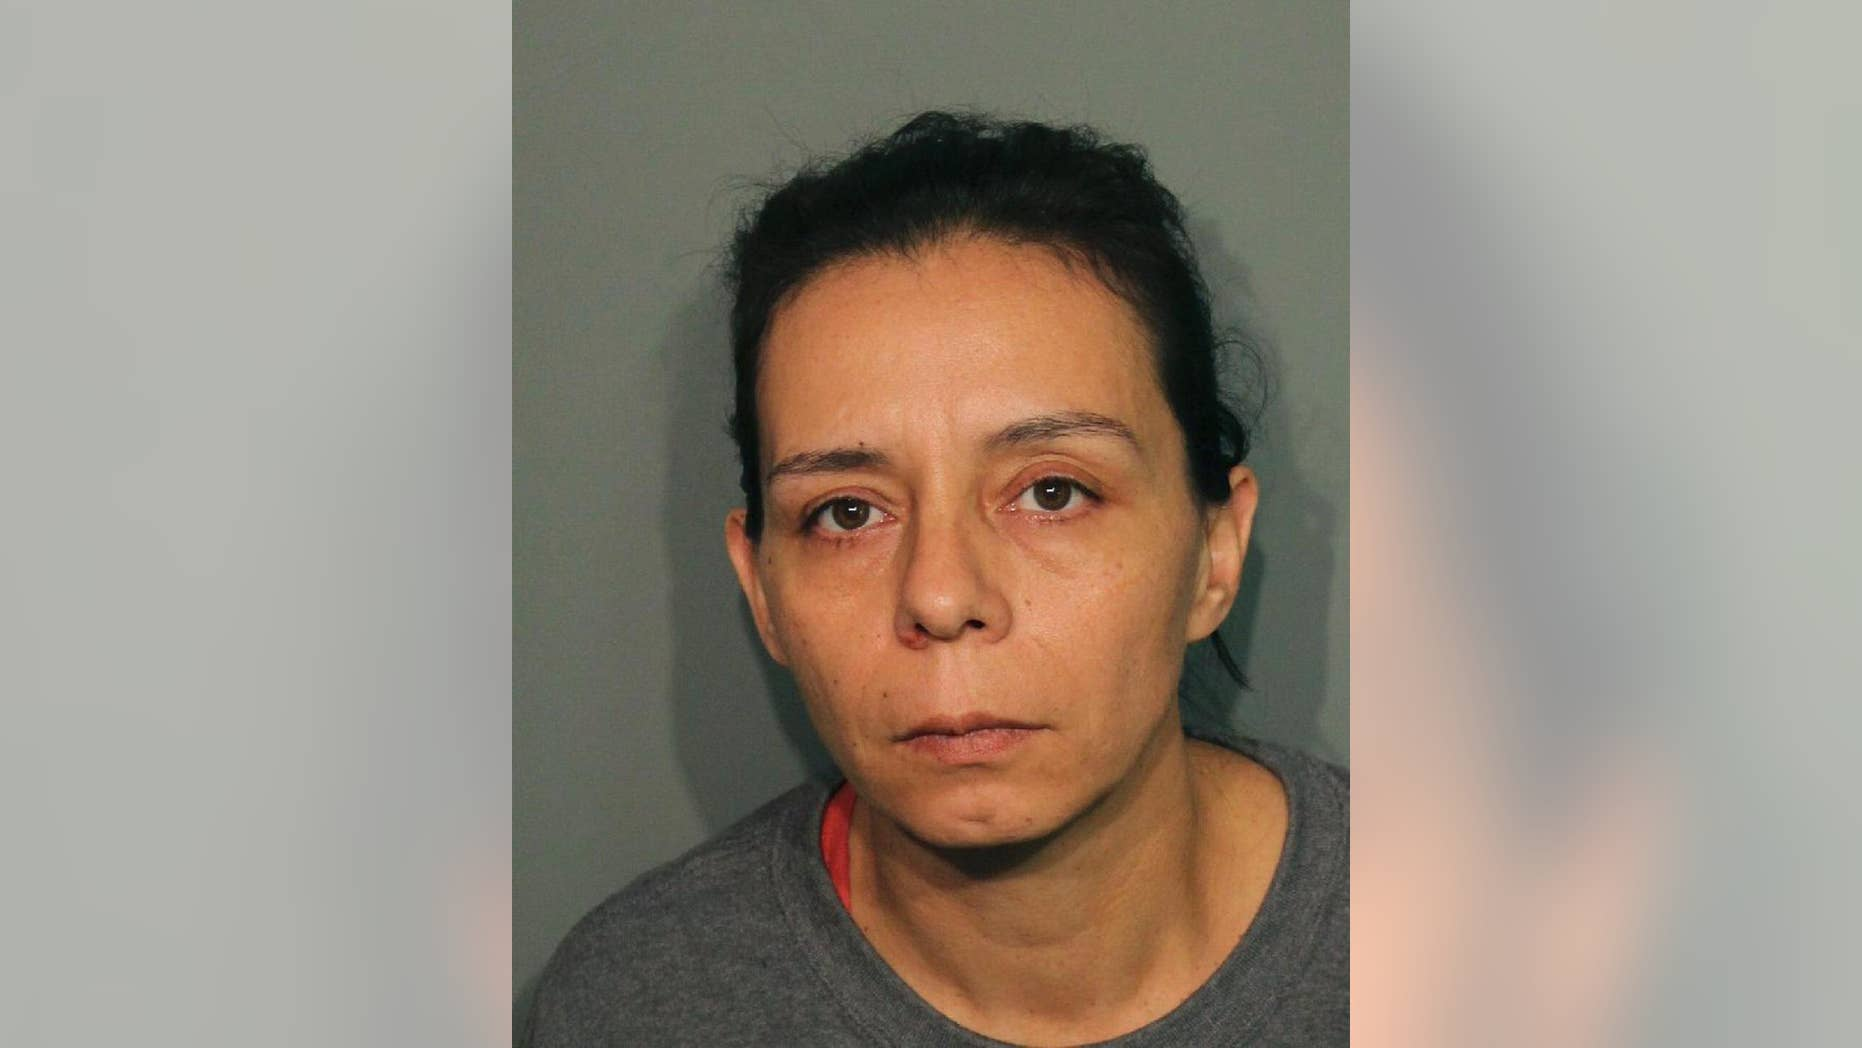 This booking photo released Wednesday, Sept. 21, 2016, by the Calaveras County Sheriff's Office shows Guadalupe Sierra Arrellano in San Andreas, Calif. Arrellano is one of two women arrested on charges of holding multiple men captive at an illegal marijuana plantation in Northern California and forcing them to work there for several months. Calaveras County Sheriff's Capt. Jim Macedo said Wednesday the men fled the secluded, rural camp in July after overhearing they would be murdered after the harvest. (Calaveras County Sheriff's Office via AP)